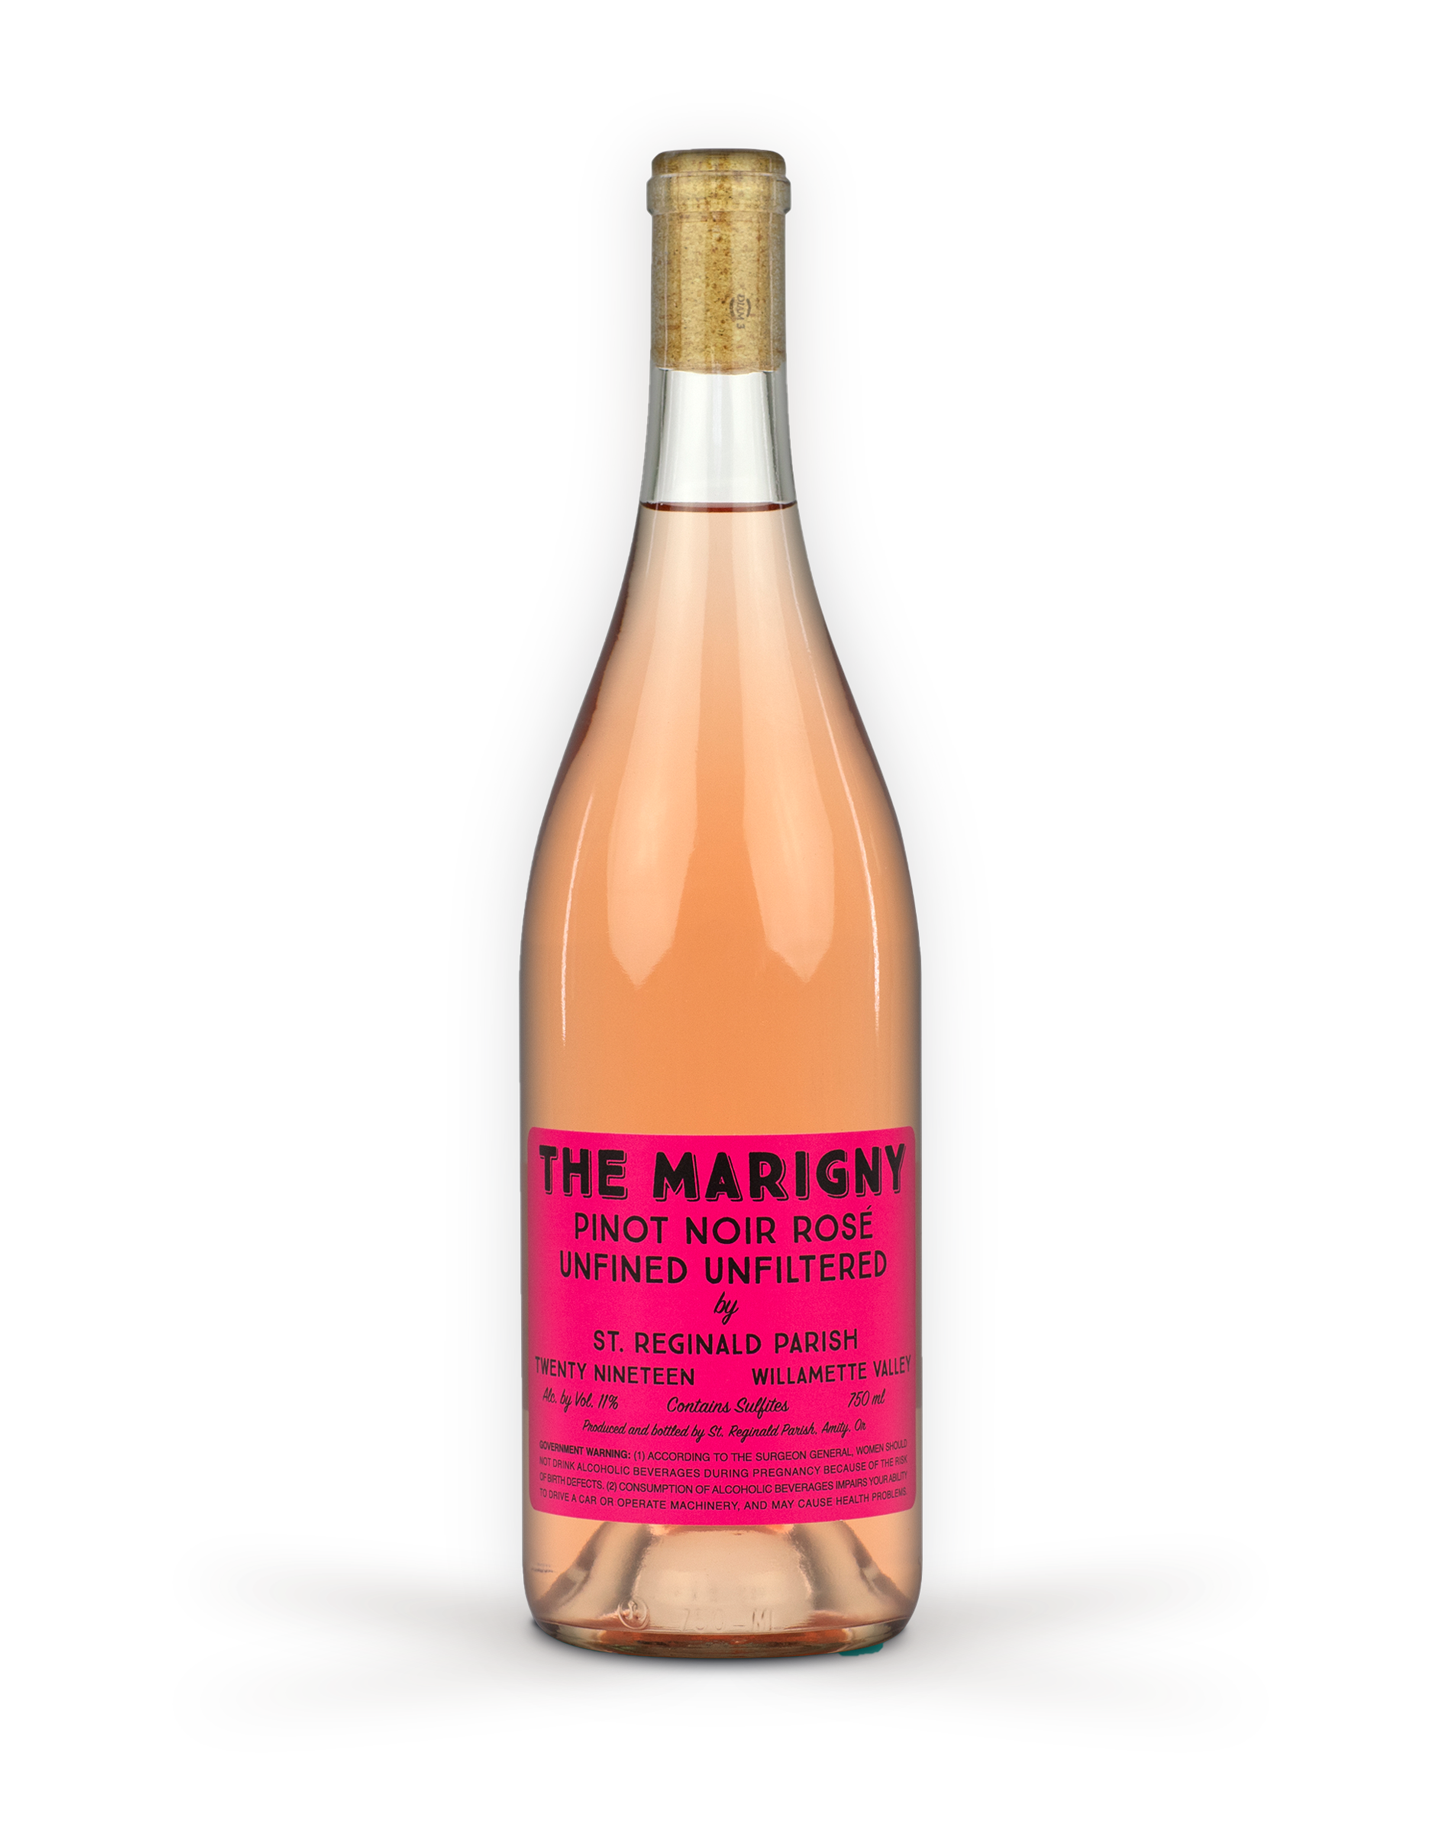 2019 Pinot Noir Rosé, Unfined Unfiltered